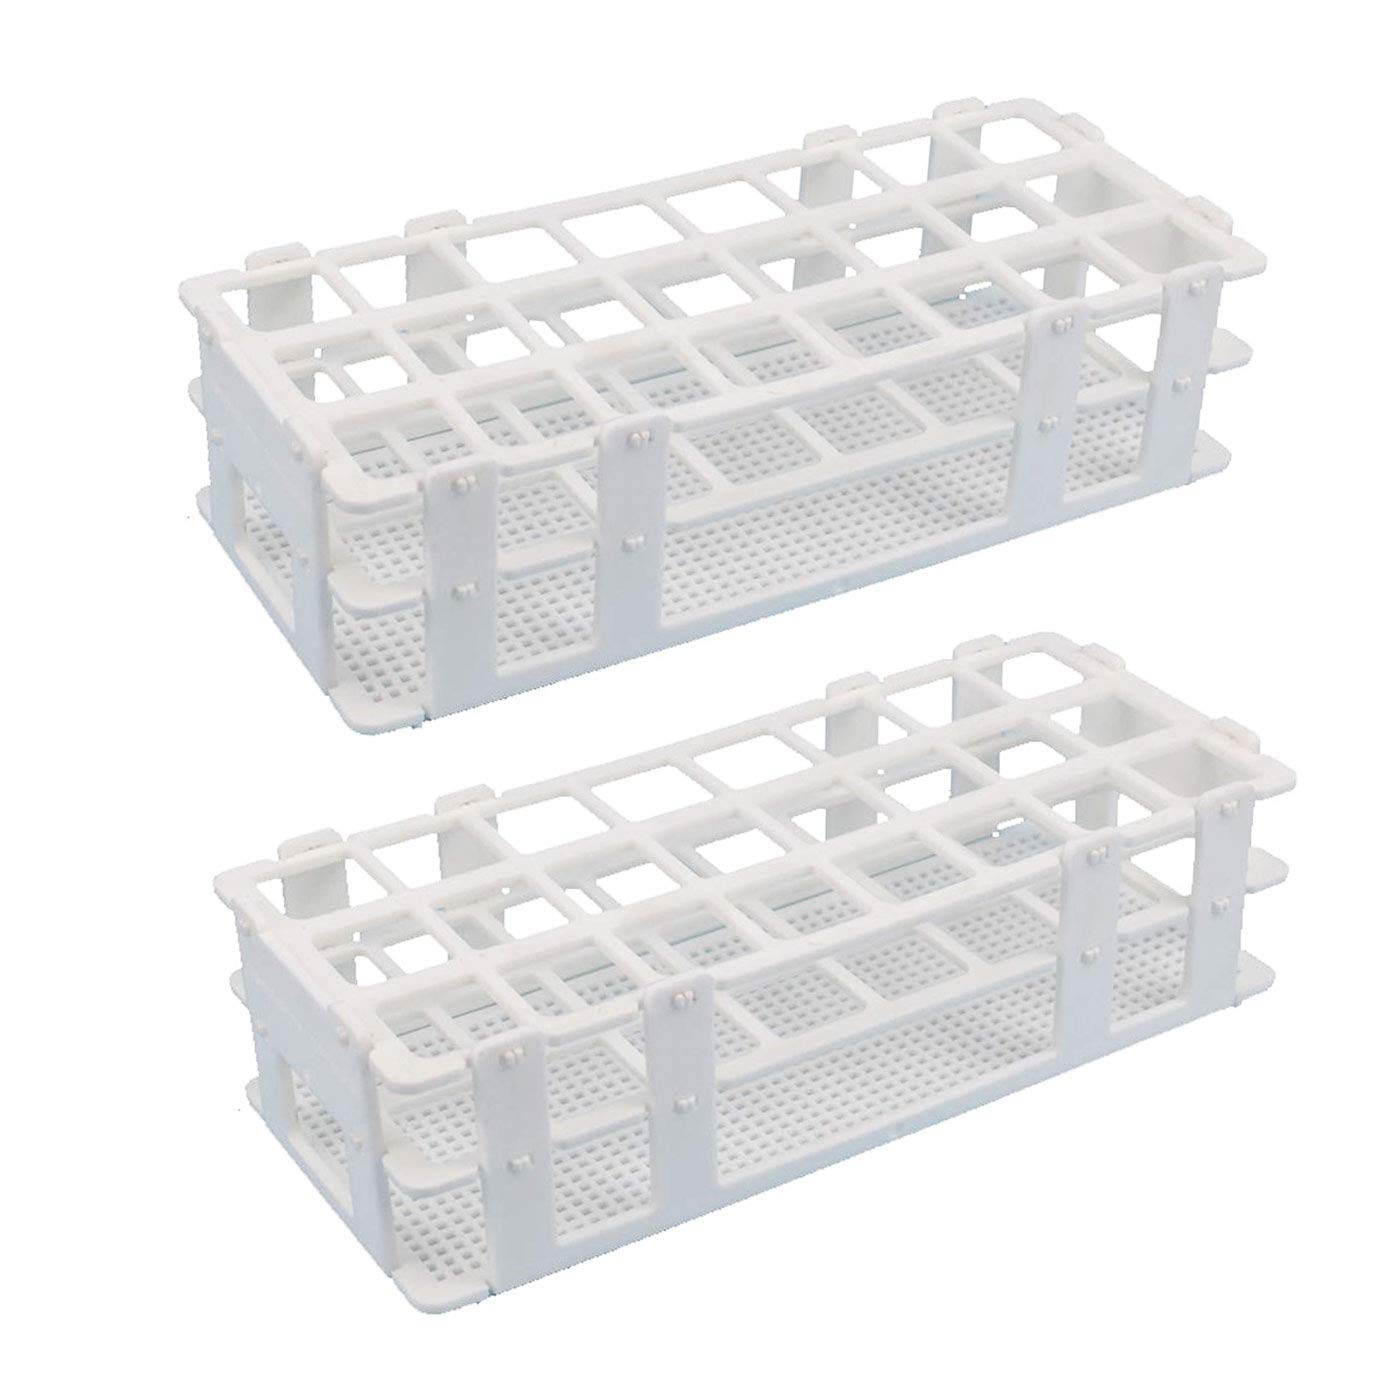 Luckkyme Plastic Test Tube Rack 2 Pack 24 Holes Lab Test Tube Rack Holder for 25mm and Below The Test Tubes, Detachable, White 2Pack by Luckkyme